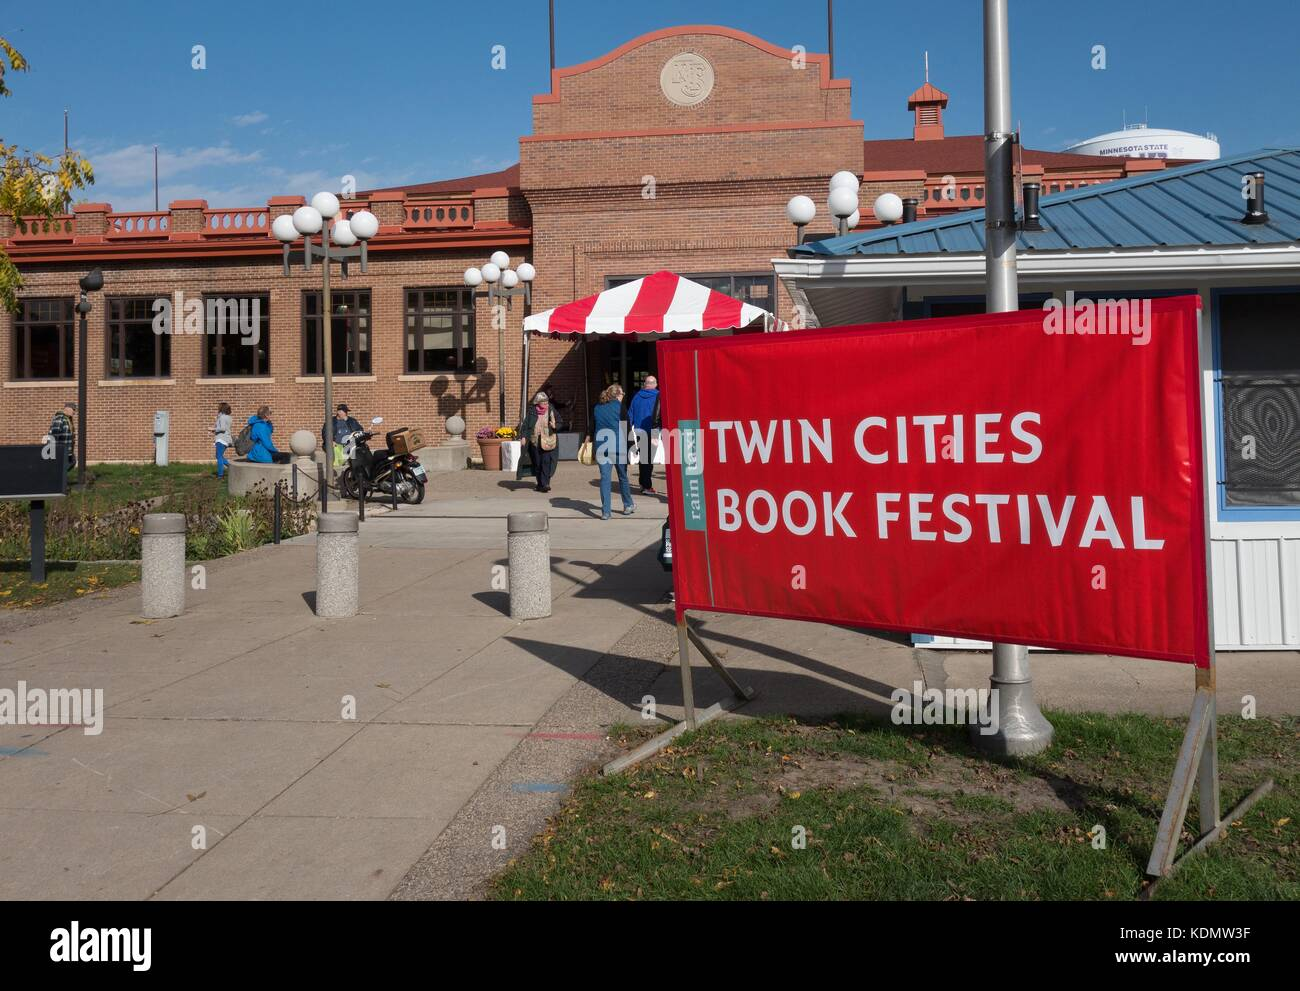 People walking into the Twin Cities Book Festival, in St. Paul, MN, USA. - Stock Image